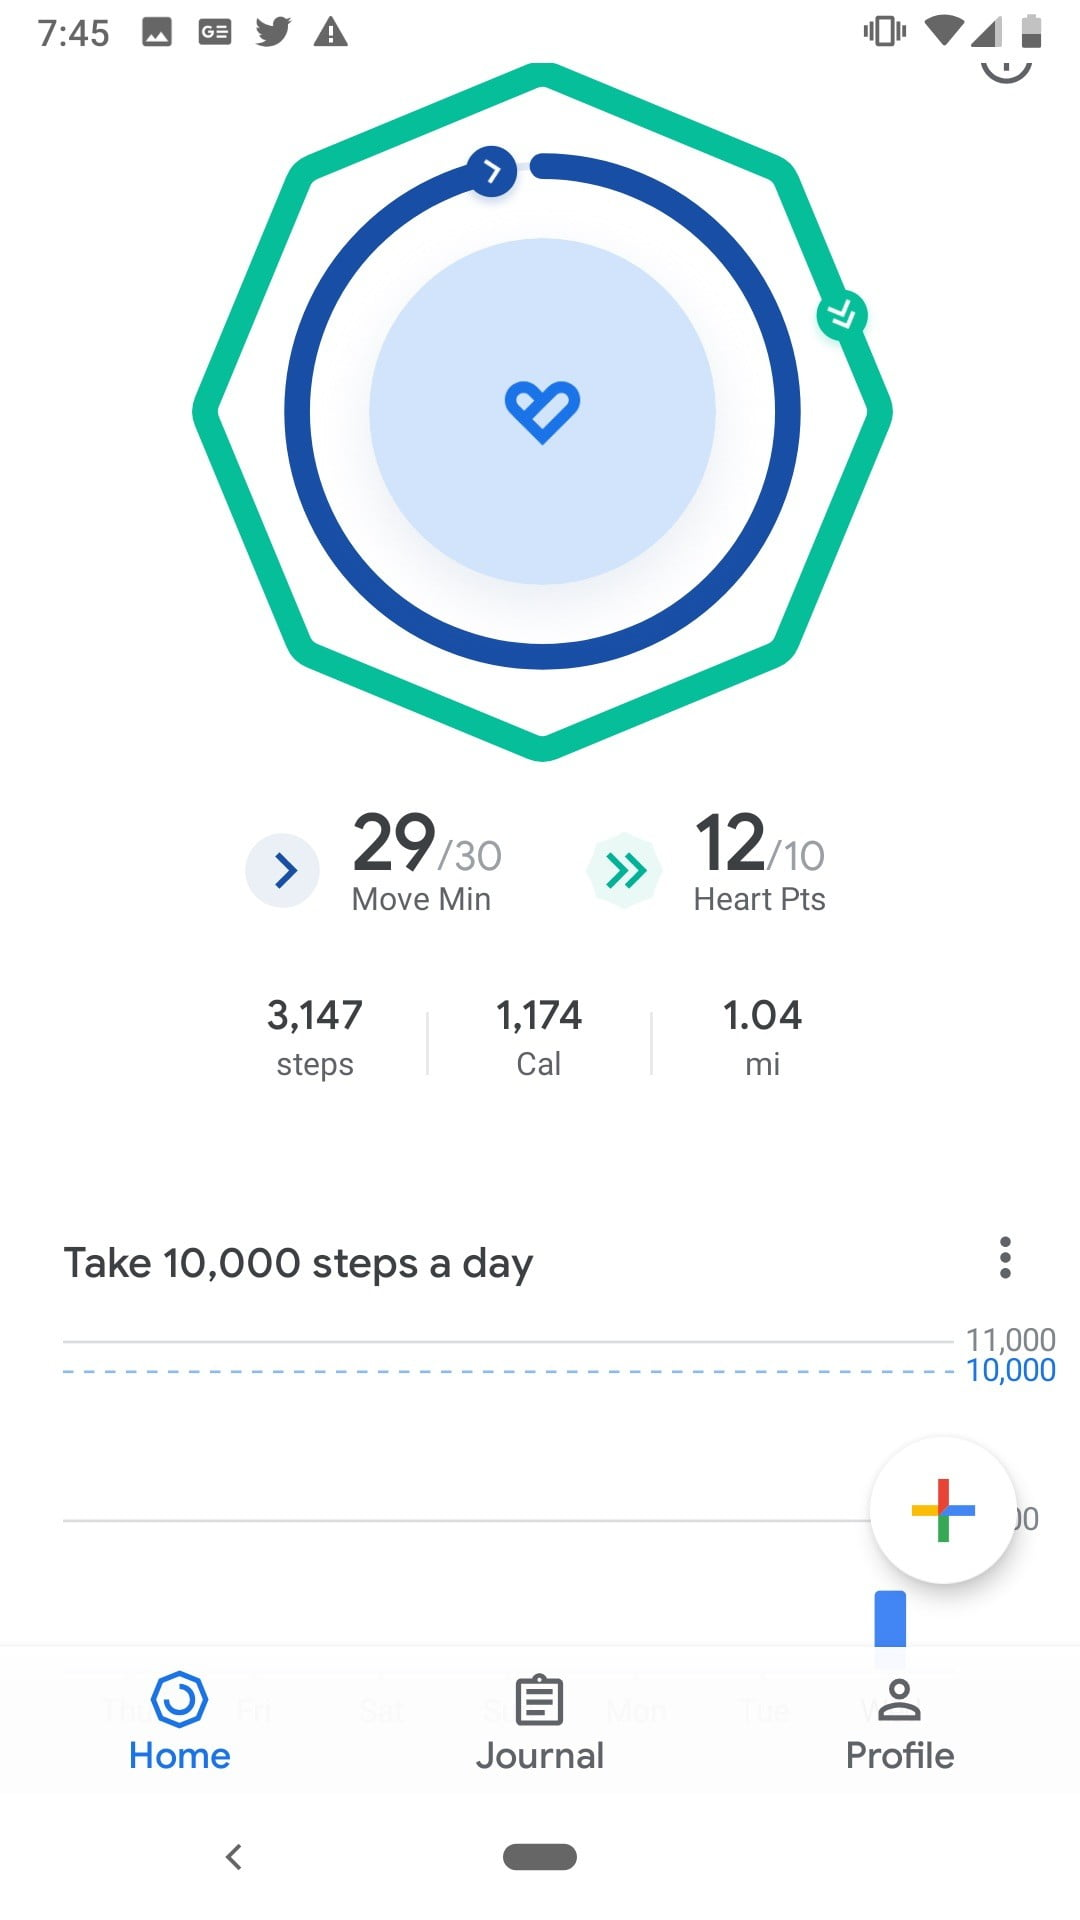 Here's How To Get The Most Out Of The Redesigned Google Fit ... on my google drive, my maps app, my msn maps, my google mail, my google gmail, my google docs, my google profile, my nokia maps, my google calendar, my google business, my google search, my maps example, my google contacts, satellite maps, weather maps, my disney maps, my places google, my google history, my google plus, bing maps,